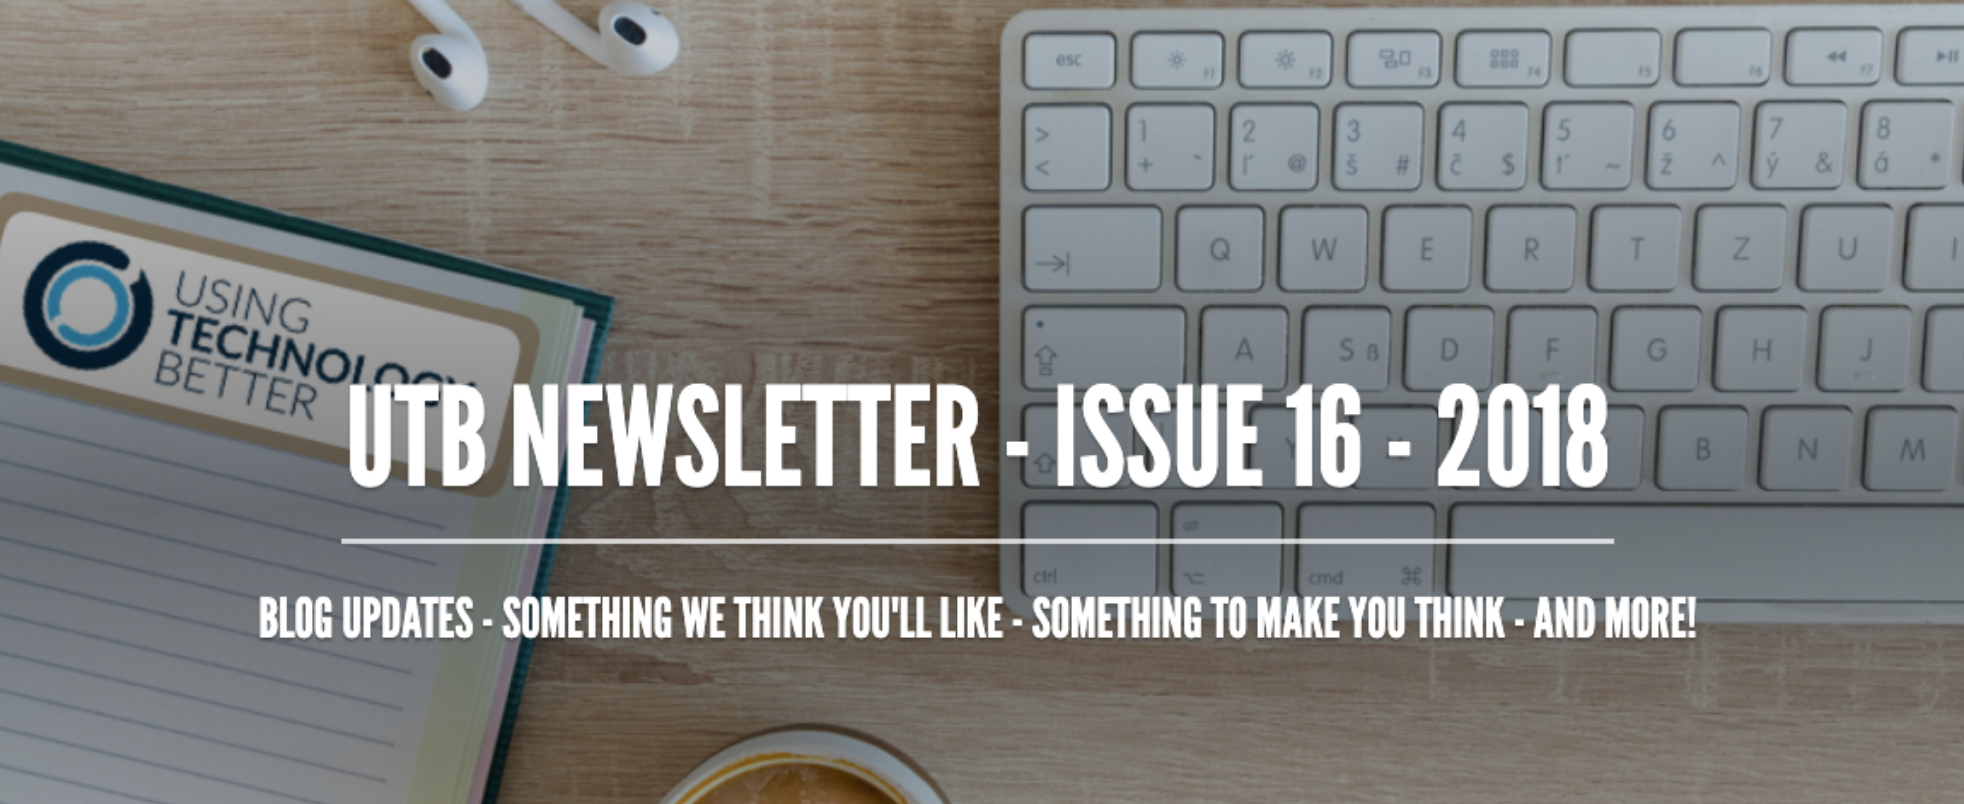 Newsletter Issue 16 - 2018